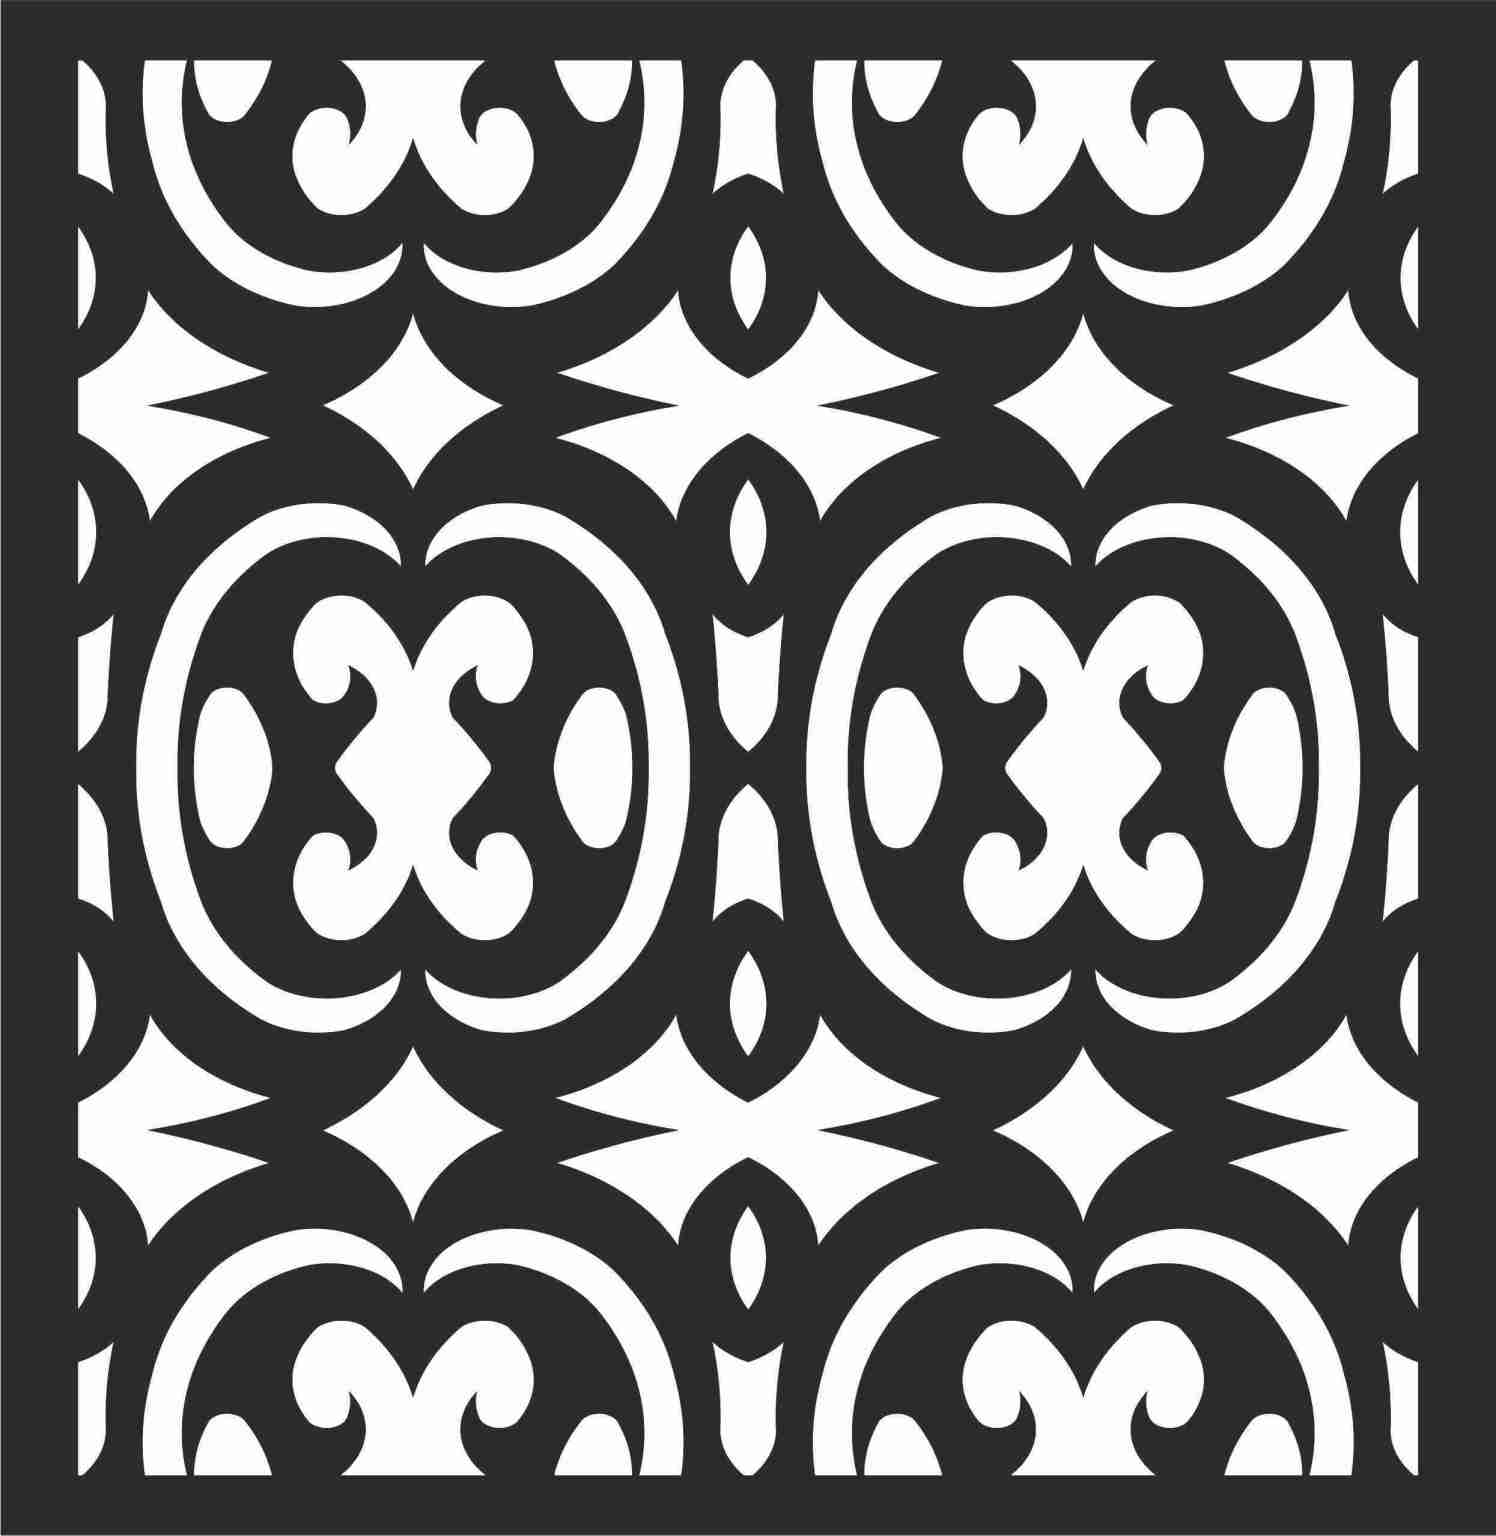 Decorative Screen Patterns For Laser Cutting 112 Free DXF File